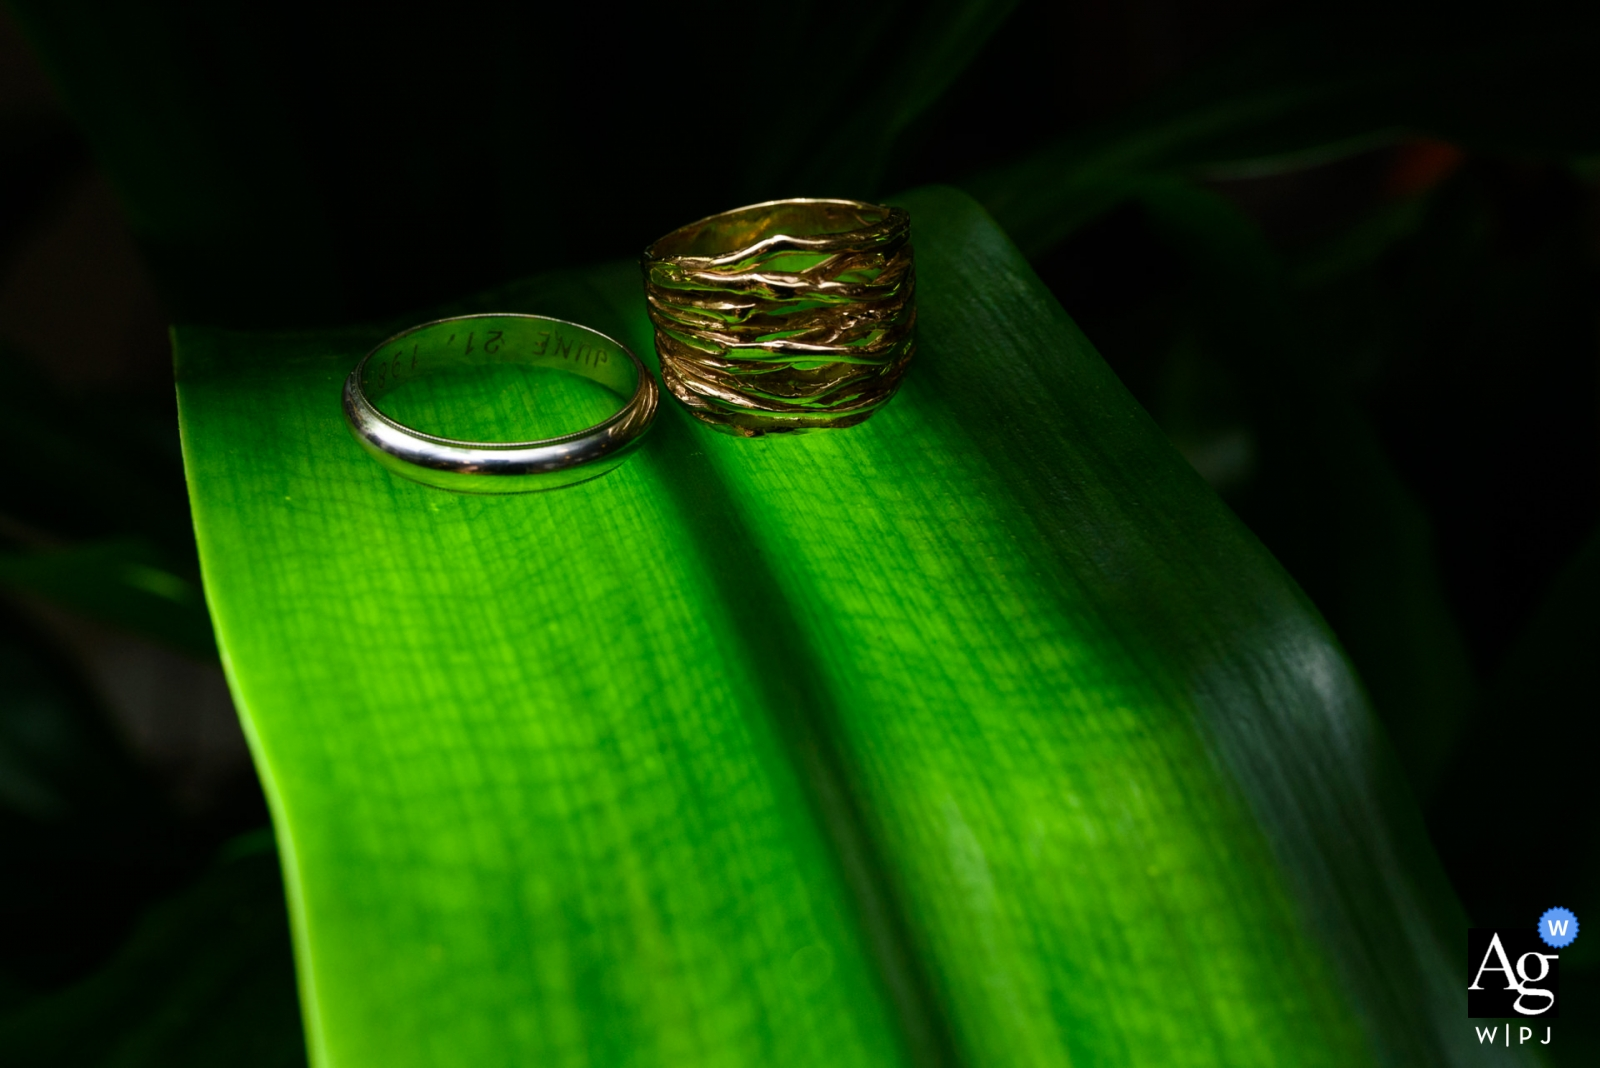 Montreal artistic creative photography detail of rings on green leaves